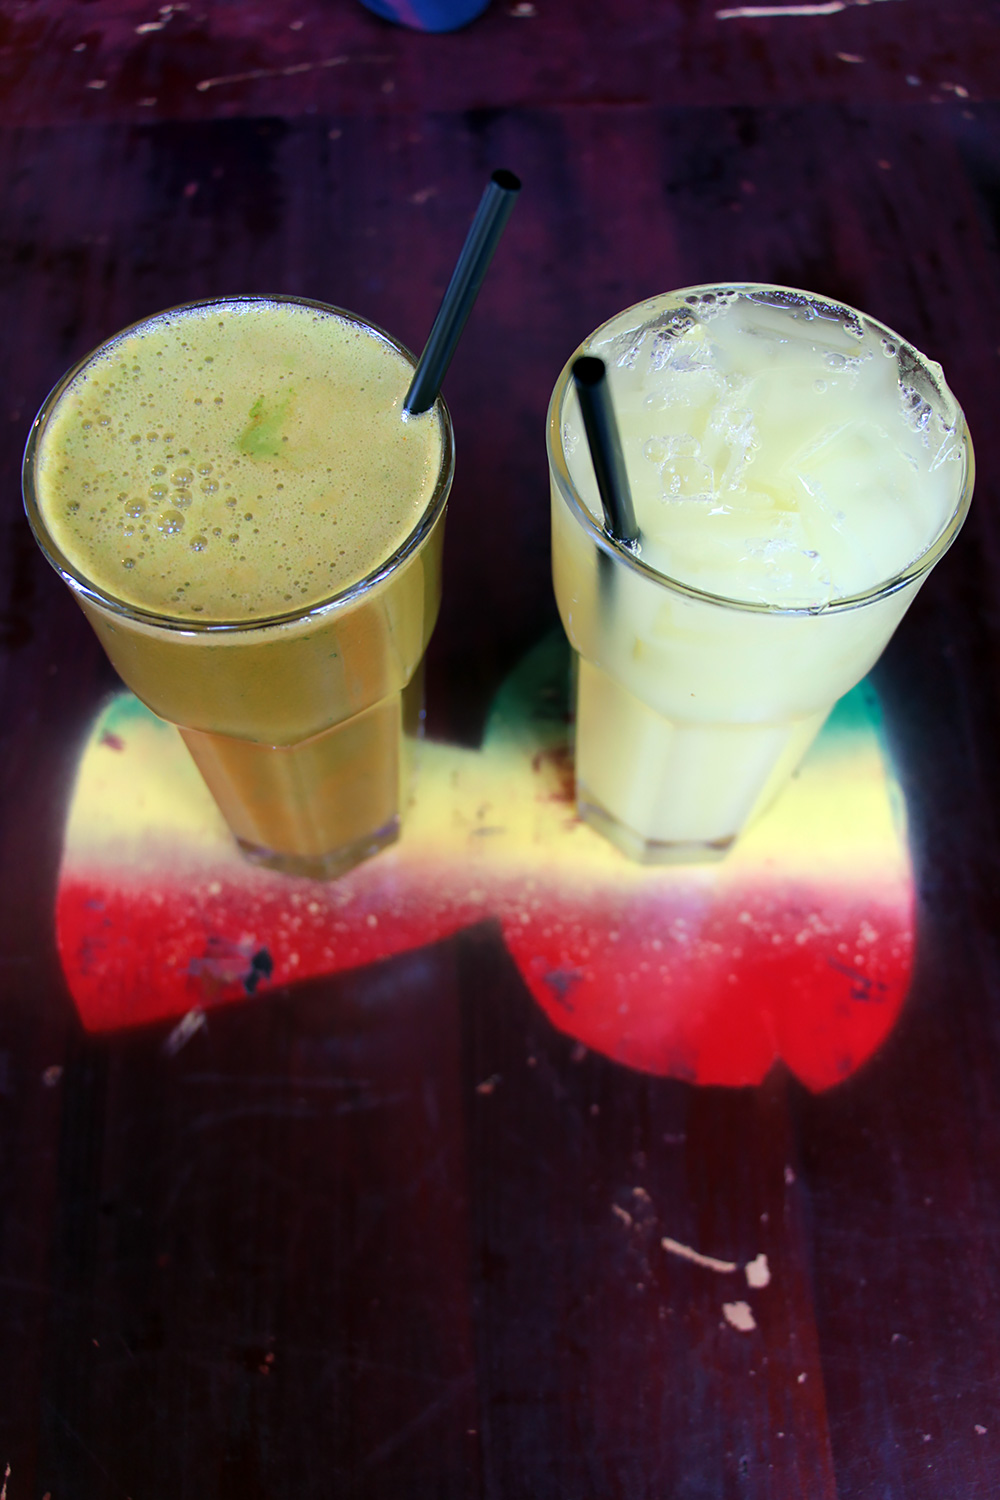 Kale, ginger, apple and carrot smoothie (L) or ginger and pineapple juice (R).